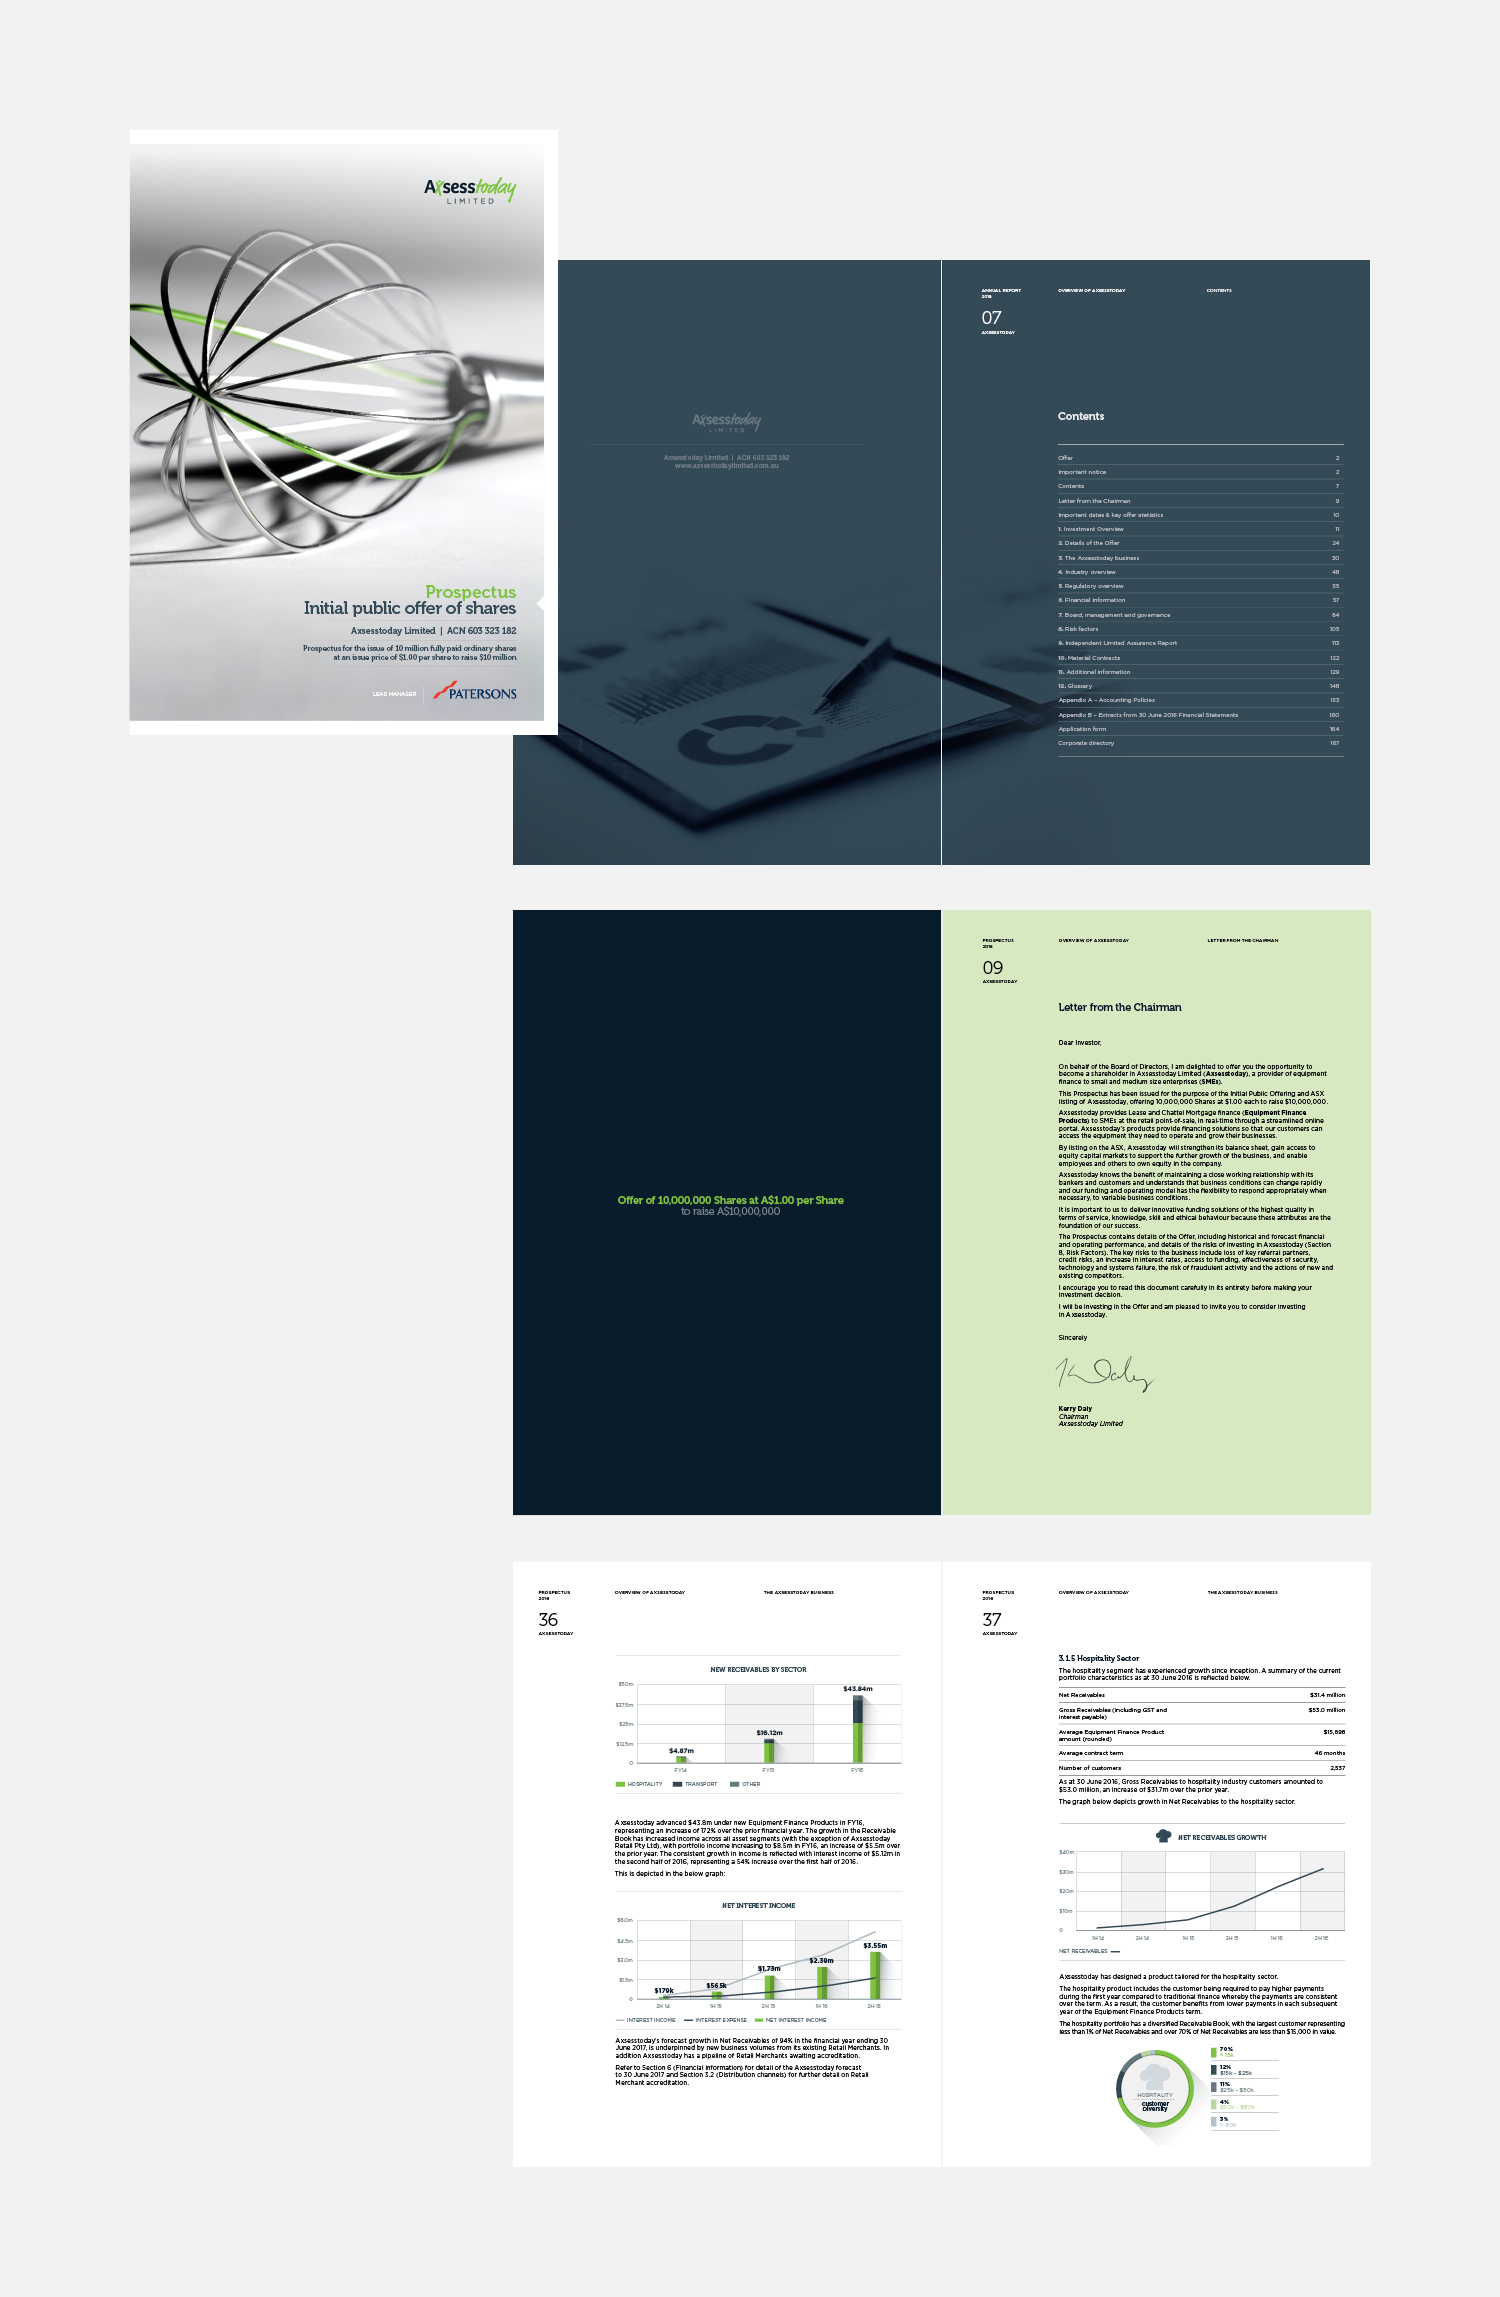 Gray+Design+Axsesstoday+prospectus-1.jpg